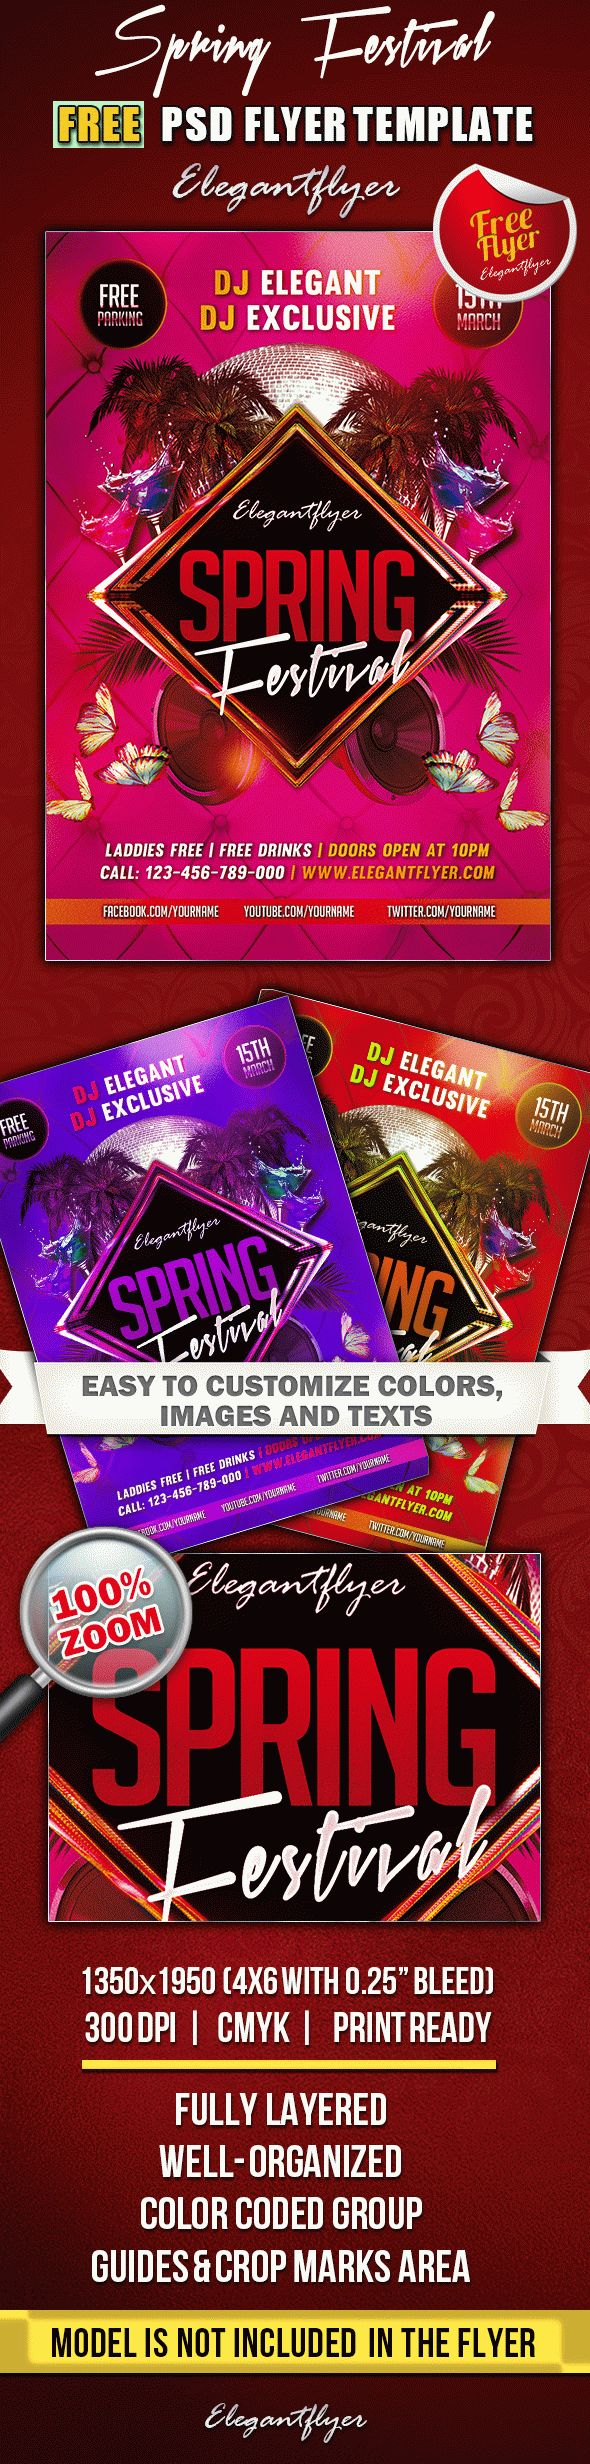 Spring Festival – Club and Party Free Flyer PSD Template